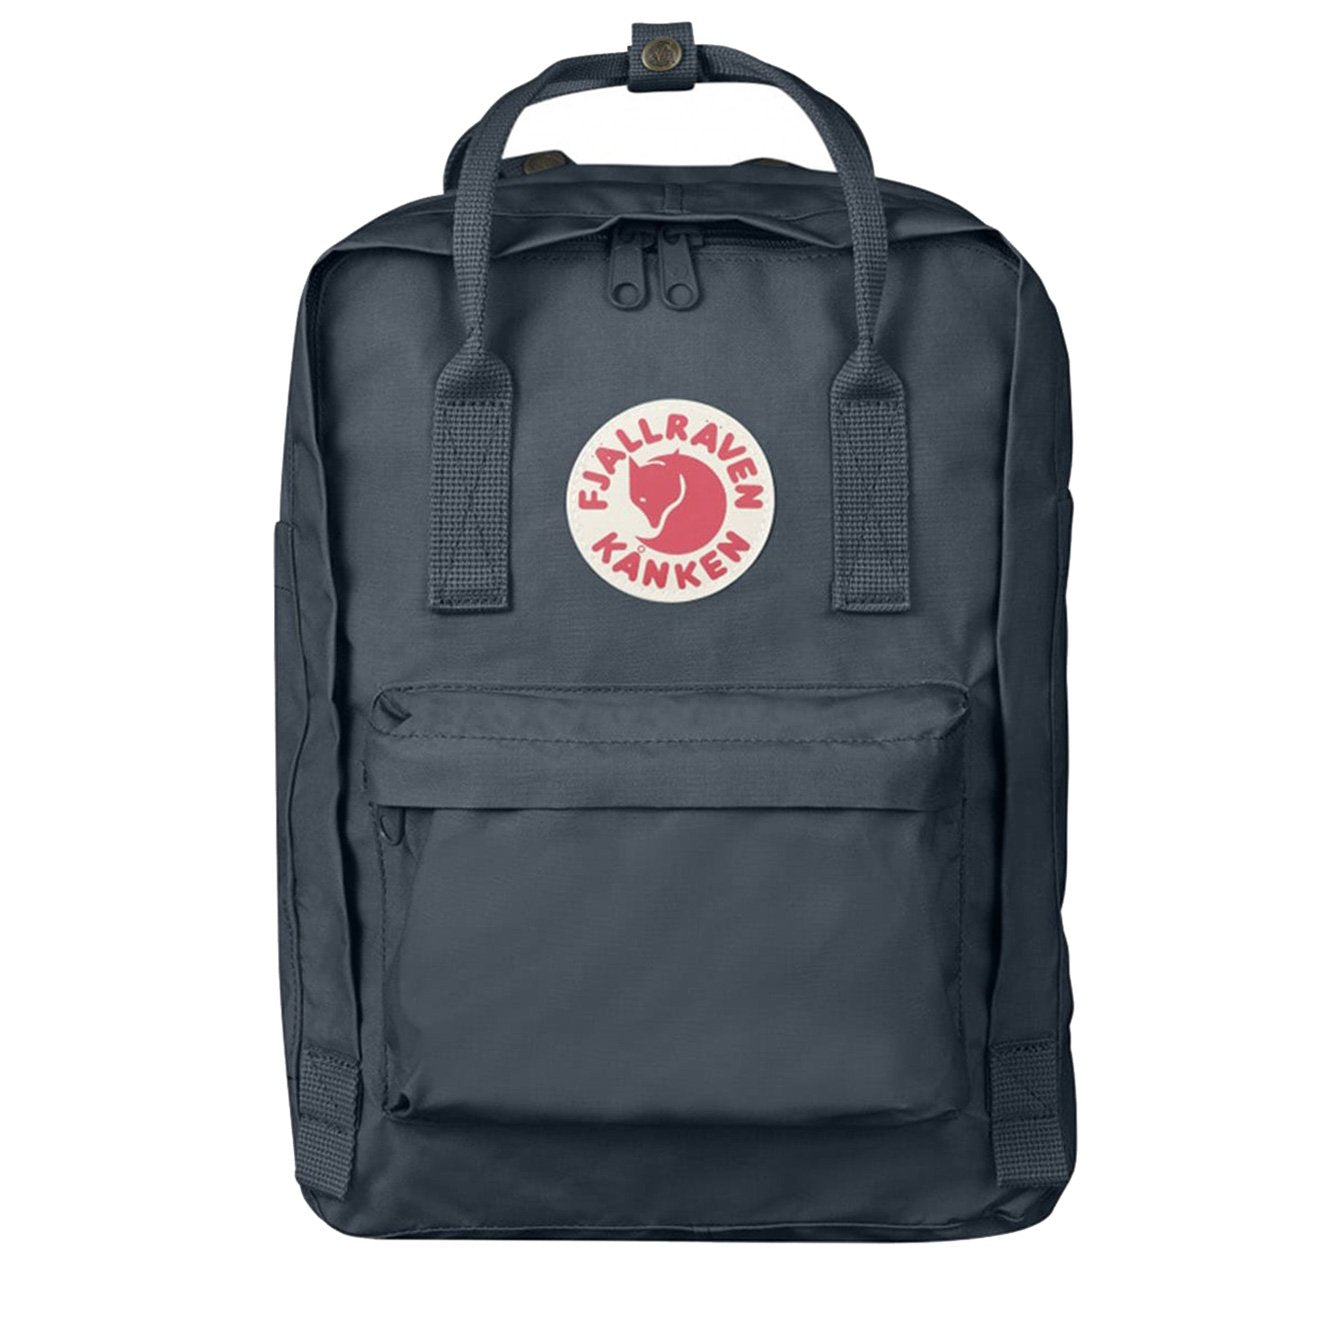 9cc65ecd2 Fjallraven Kanken Laptop 13 Graphite | My Kånken Bag